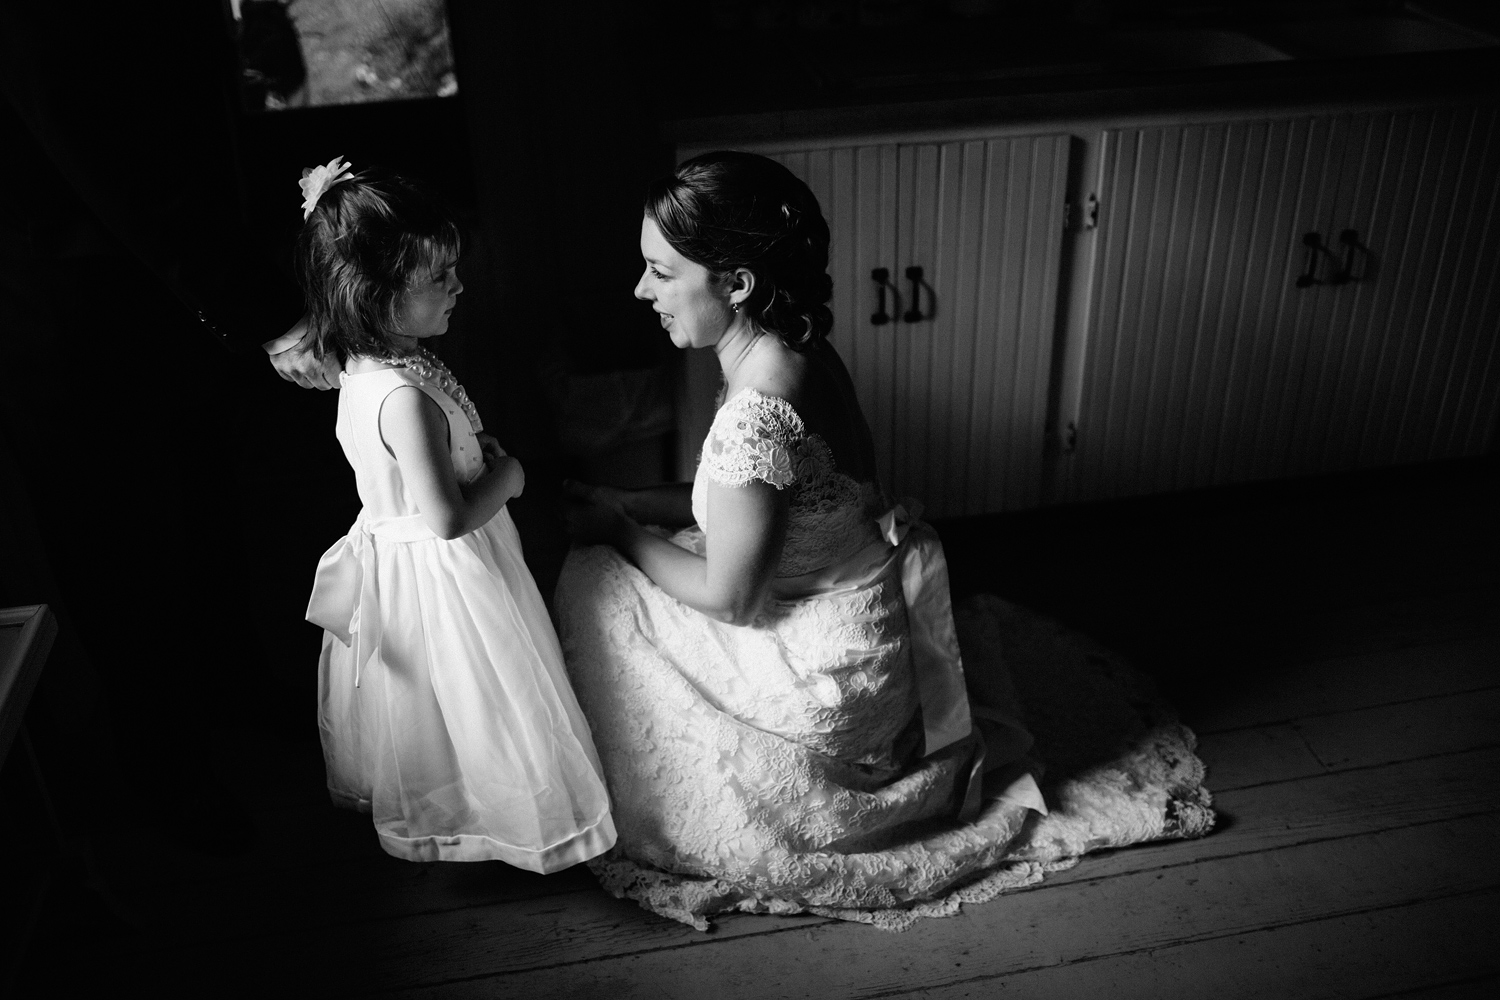 ryan-flynn-photography-best-wedding-photos-2014-0147.JPG